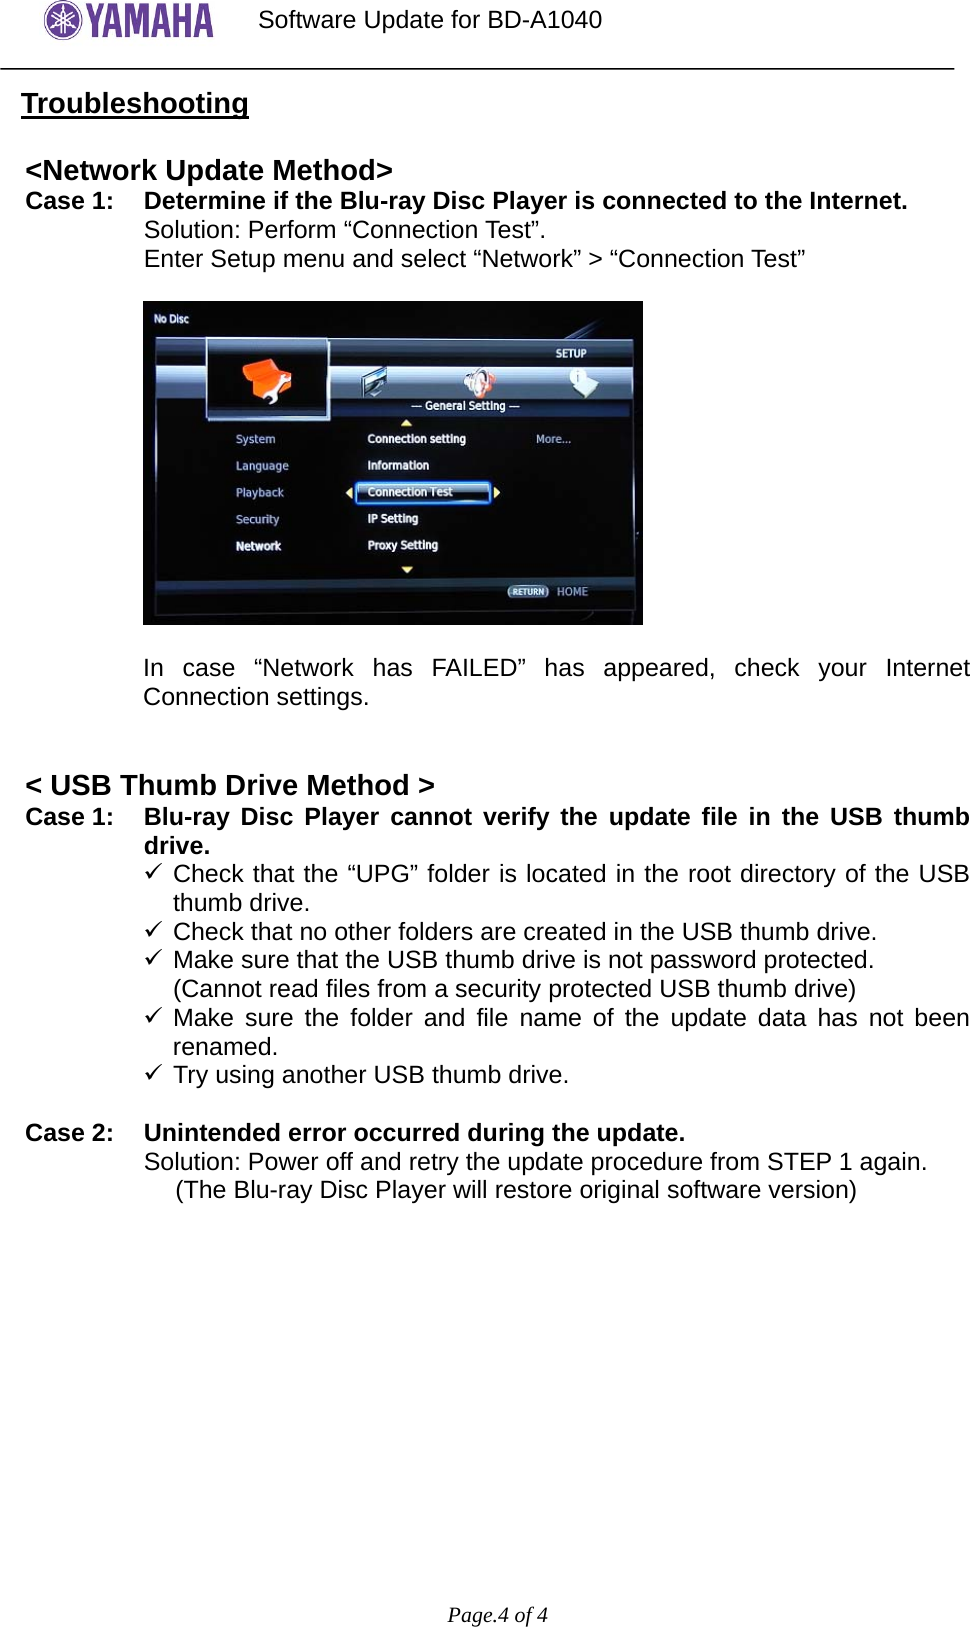 Yamaha Bda1040 Firmware Updatex Bd A1040 Software Update Version Out That The Original Schematic Was In Error This Has Been Updated Page 4 Of